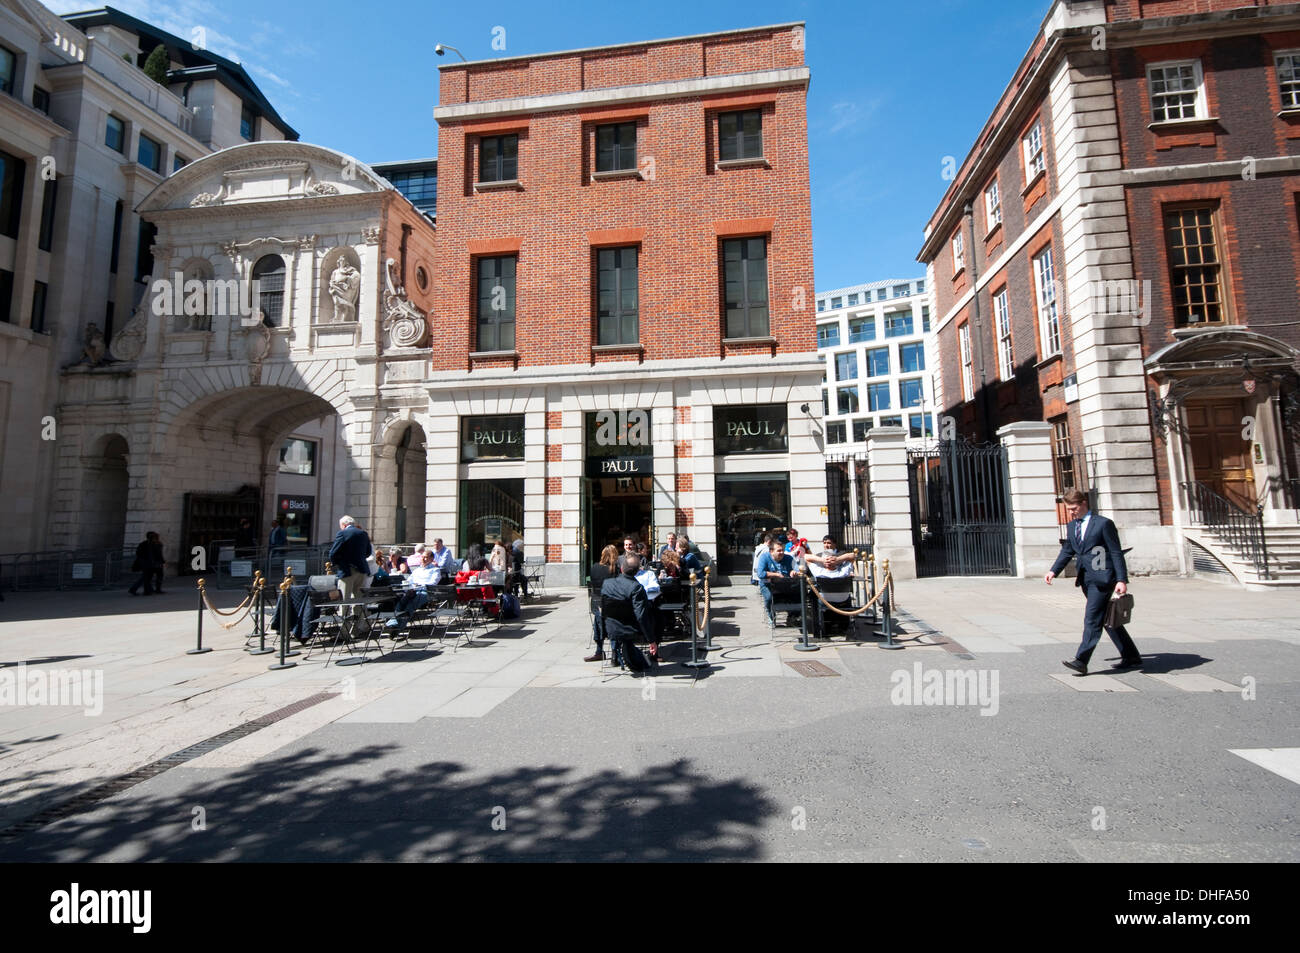 England, London, Paul French Family Bakery and Patisserie next to St Paul's Cathedral - Stock Image